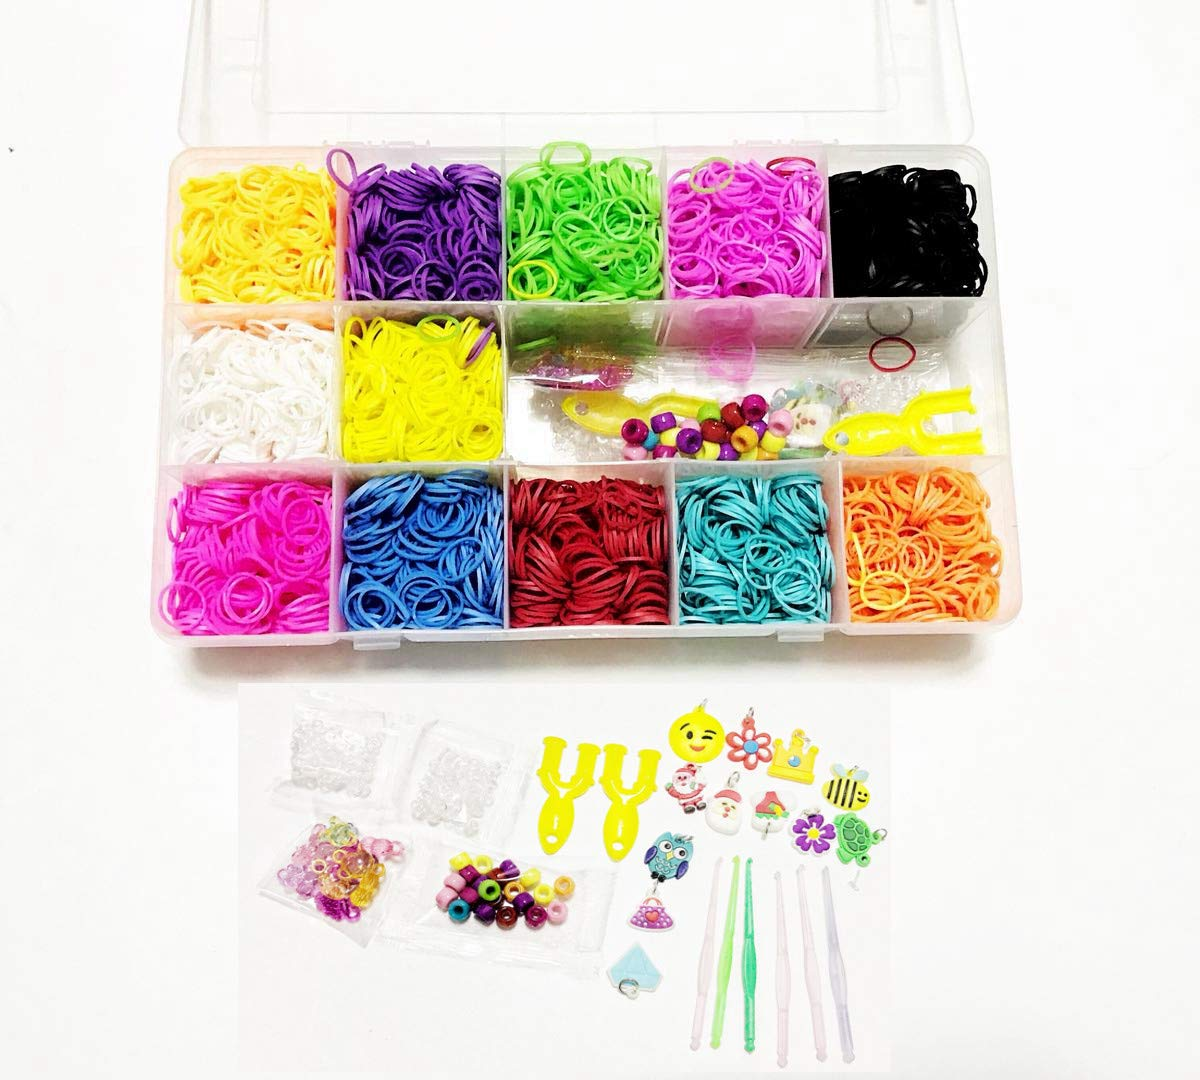 FRANNKY Rainbow Rubber Bands Mega Refill Loom Includes:5,500 Premium QualityRubber Bands Set 6 Hooks,100 S-Clips,12 Silicone Charms,45 beads (12 Rainbow Colors)